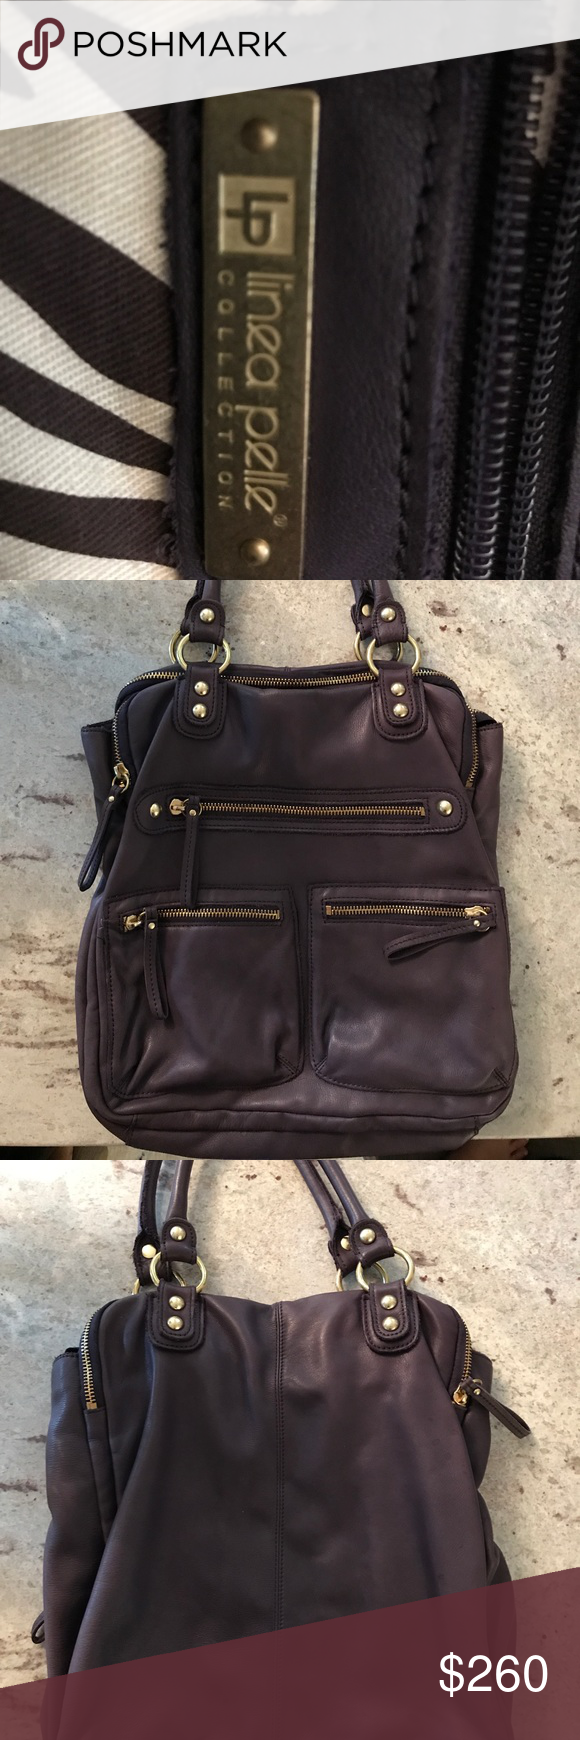 I Am Trying To Clean Out My Closet And Obviously Have Purse Problem This Is A Purple Leather Linea Pelle Bag In Excellent Condition Please Review Photos